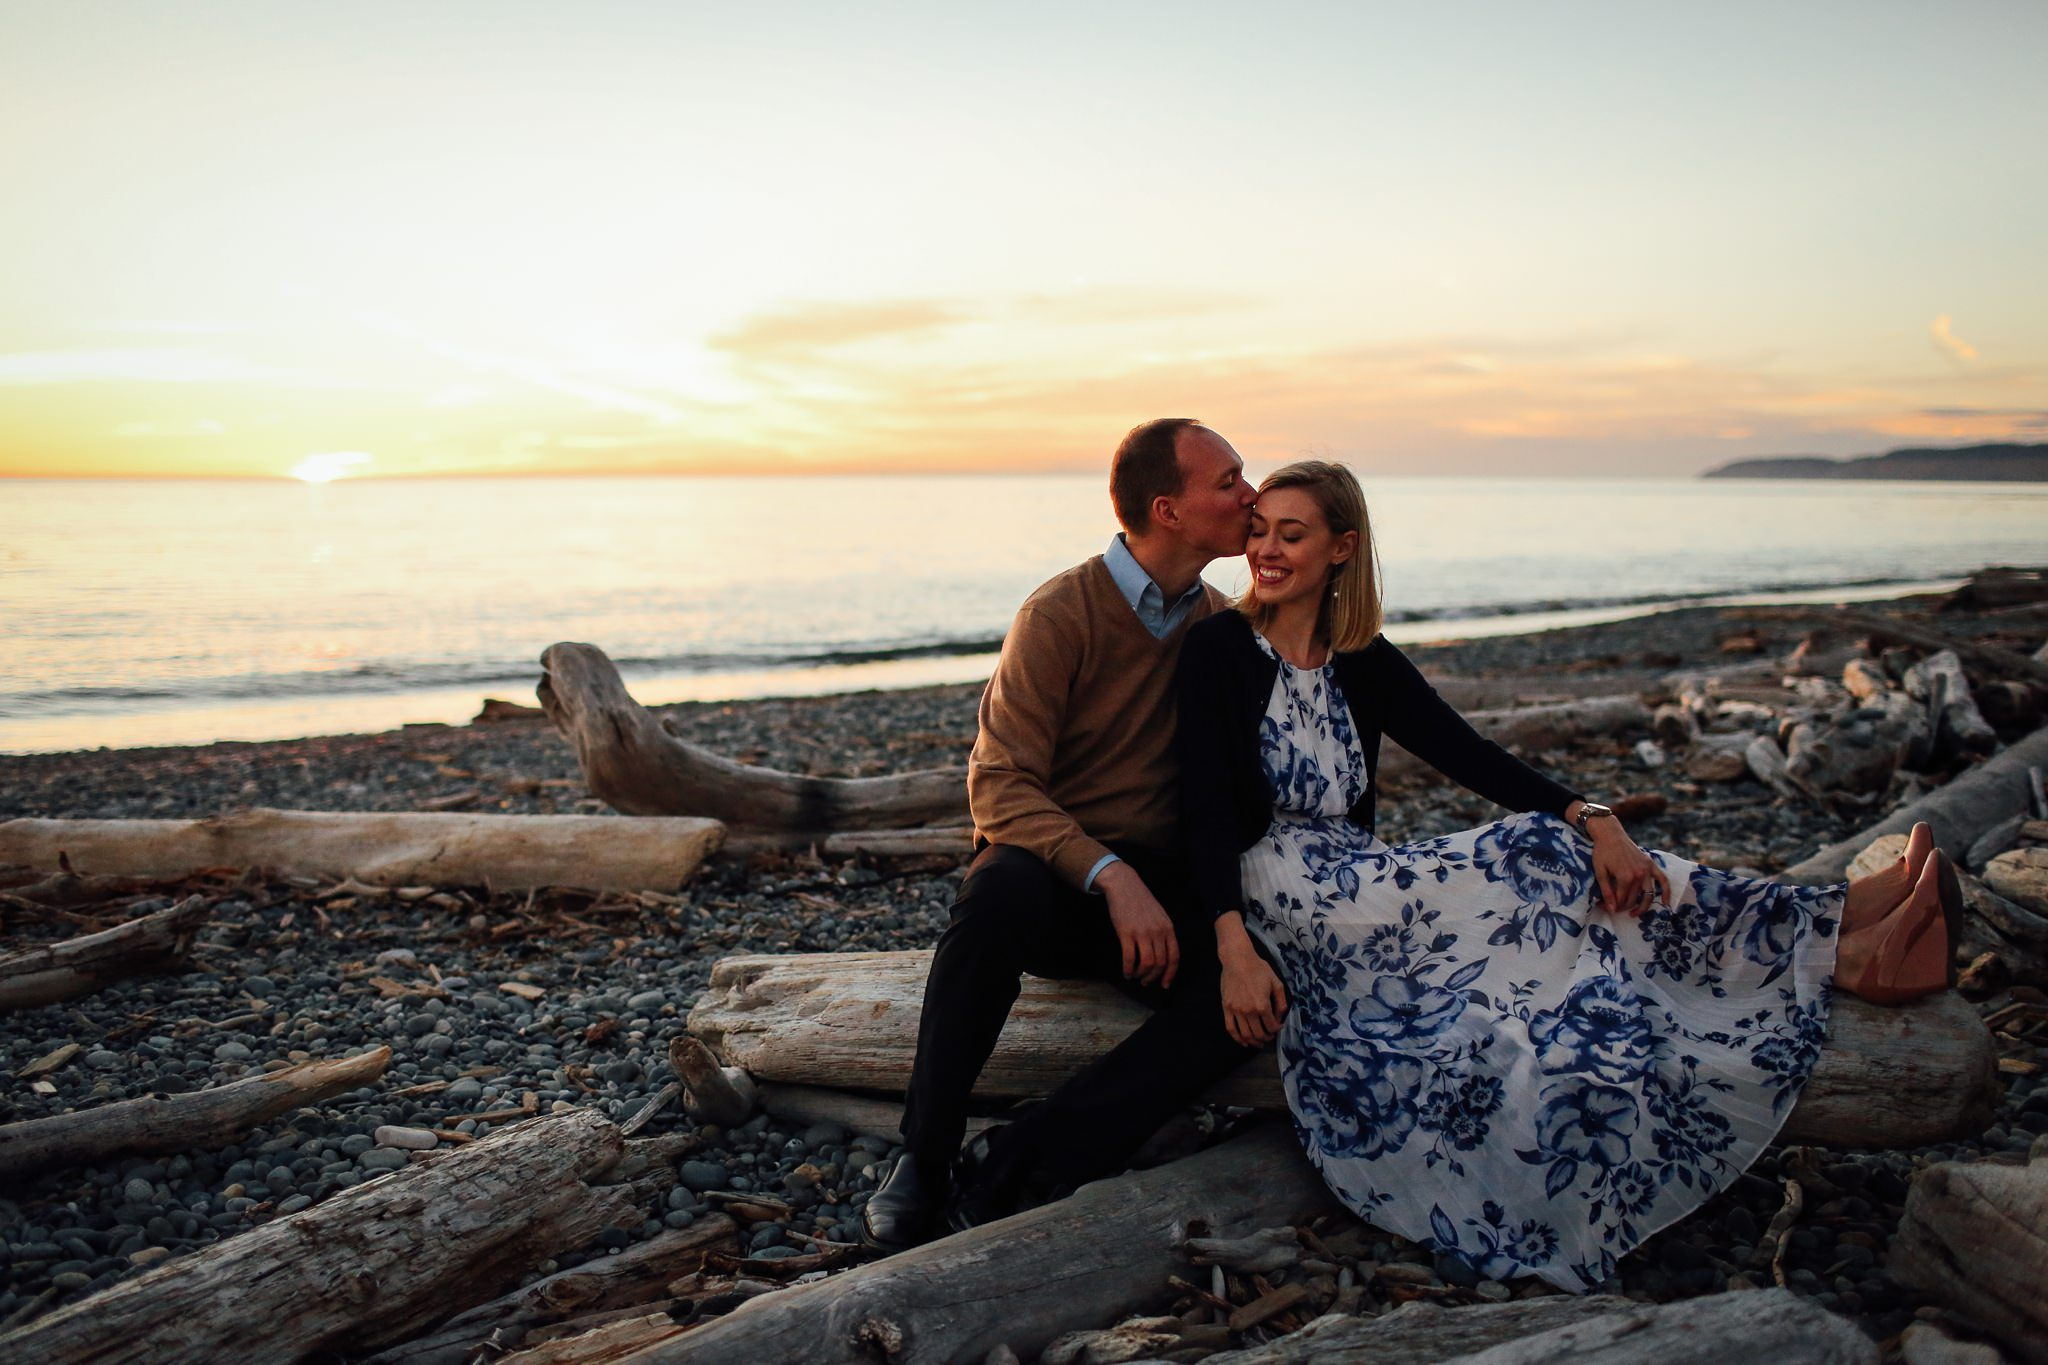 Whidbey-Island-Family-Photographer-Kara-Chappell-Photography_0991.jpg